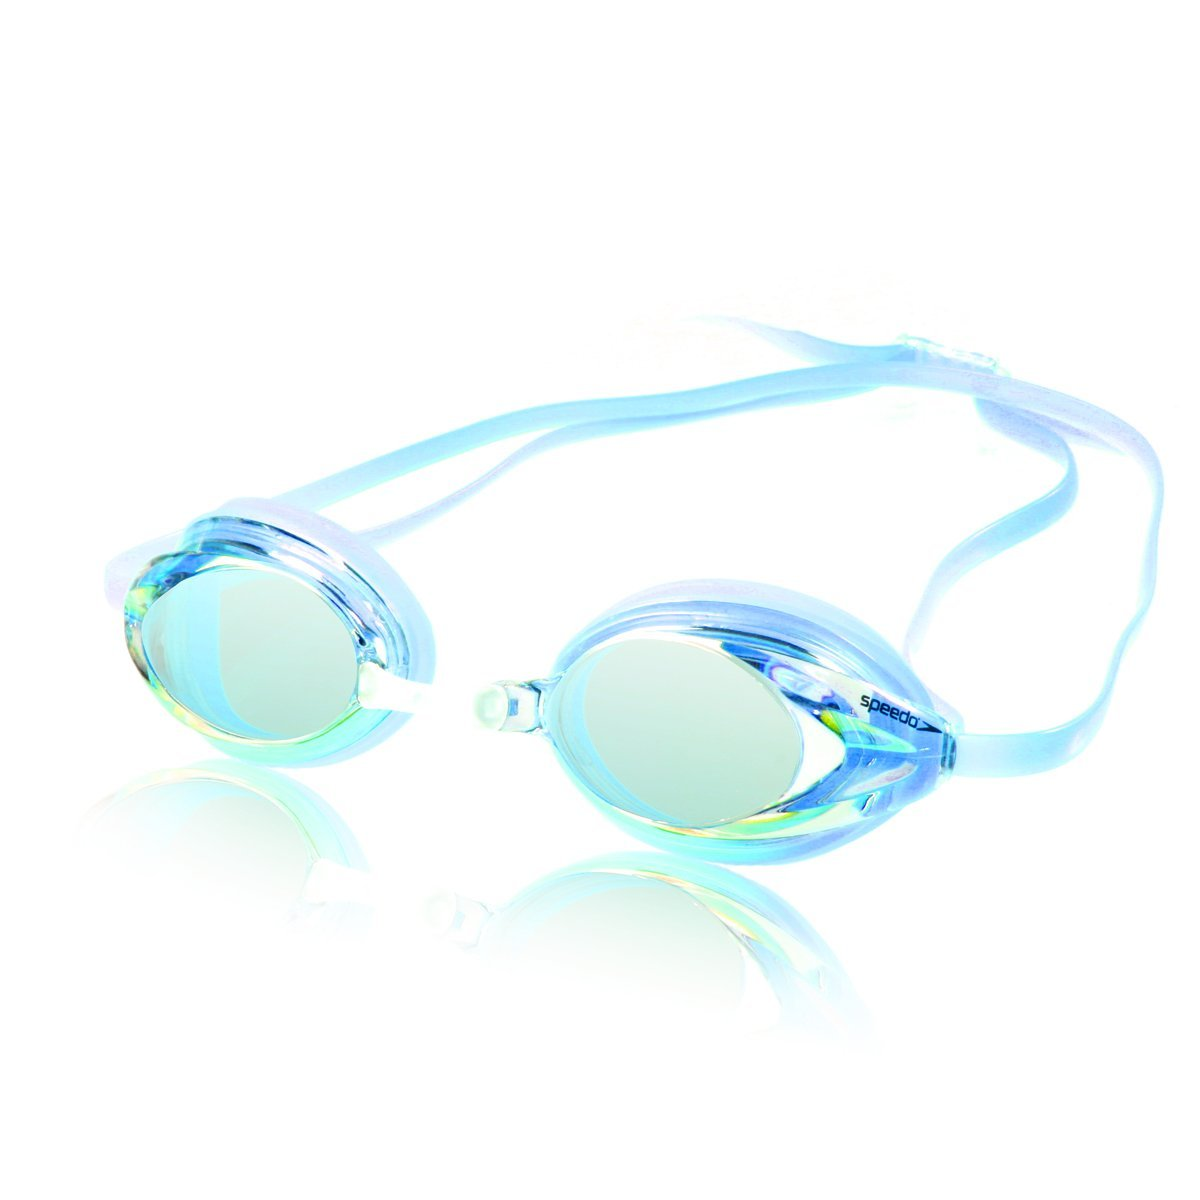 swimming eyewear  Amazon.com : Speedo Women\u0027s Vanquisher Mirrored Swim Goggle, Blue ...